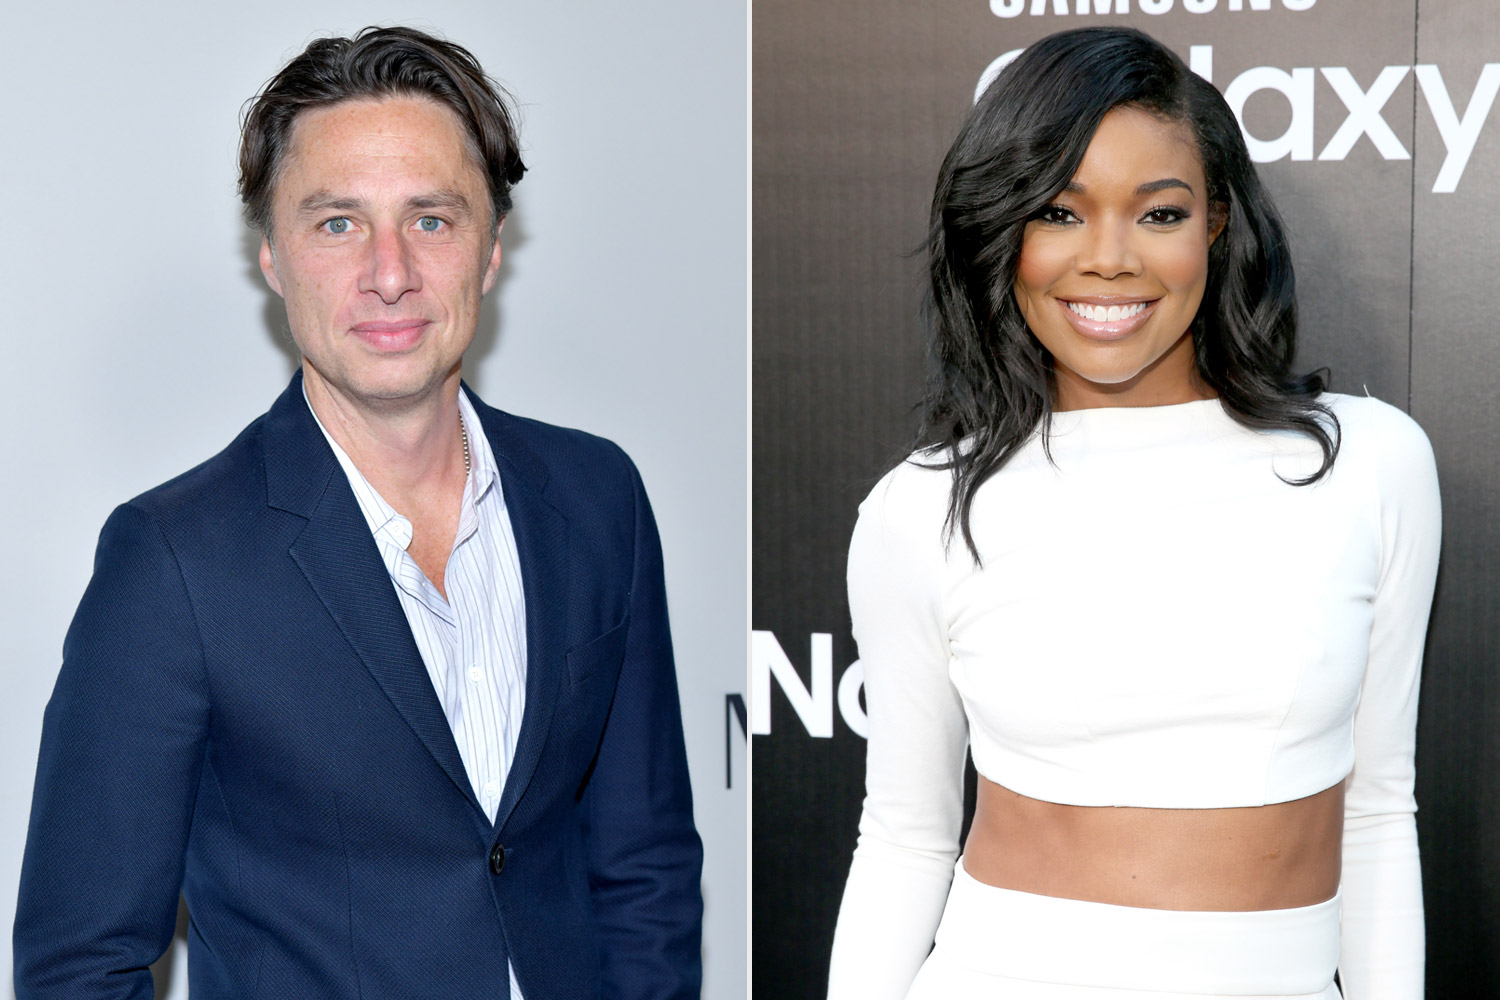 Gabrielle Union and Zach Braff